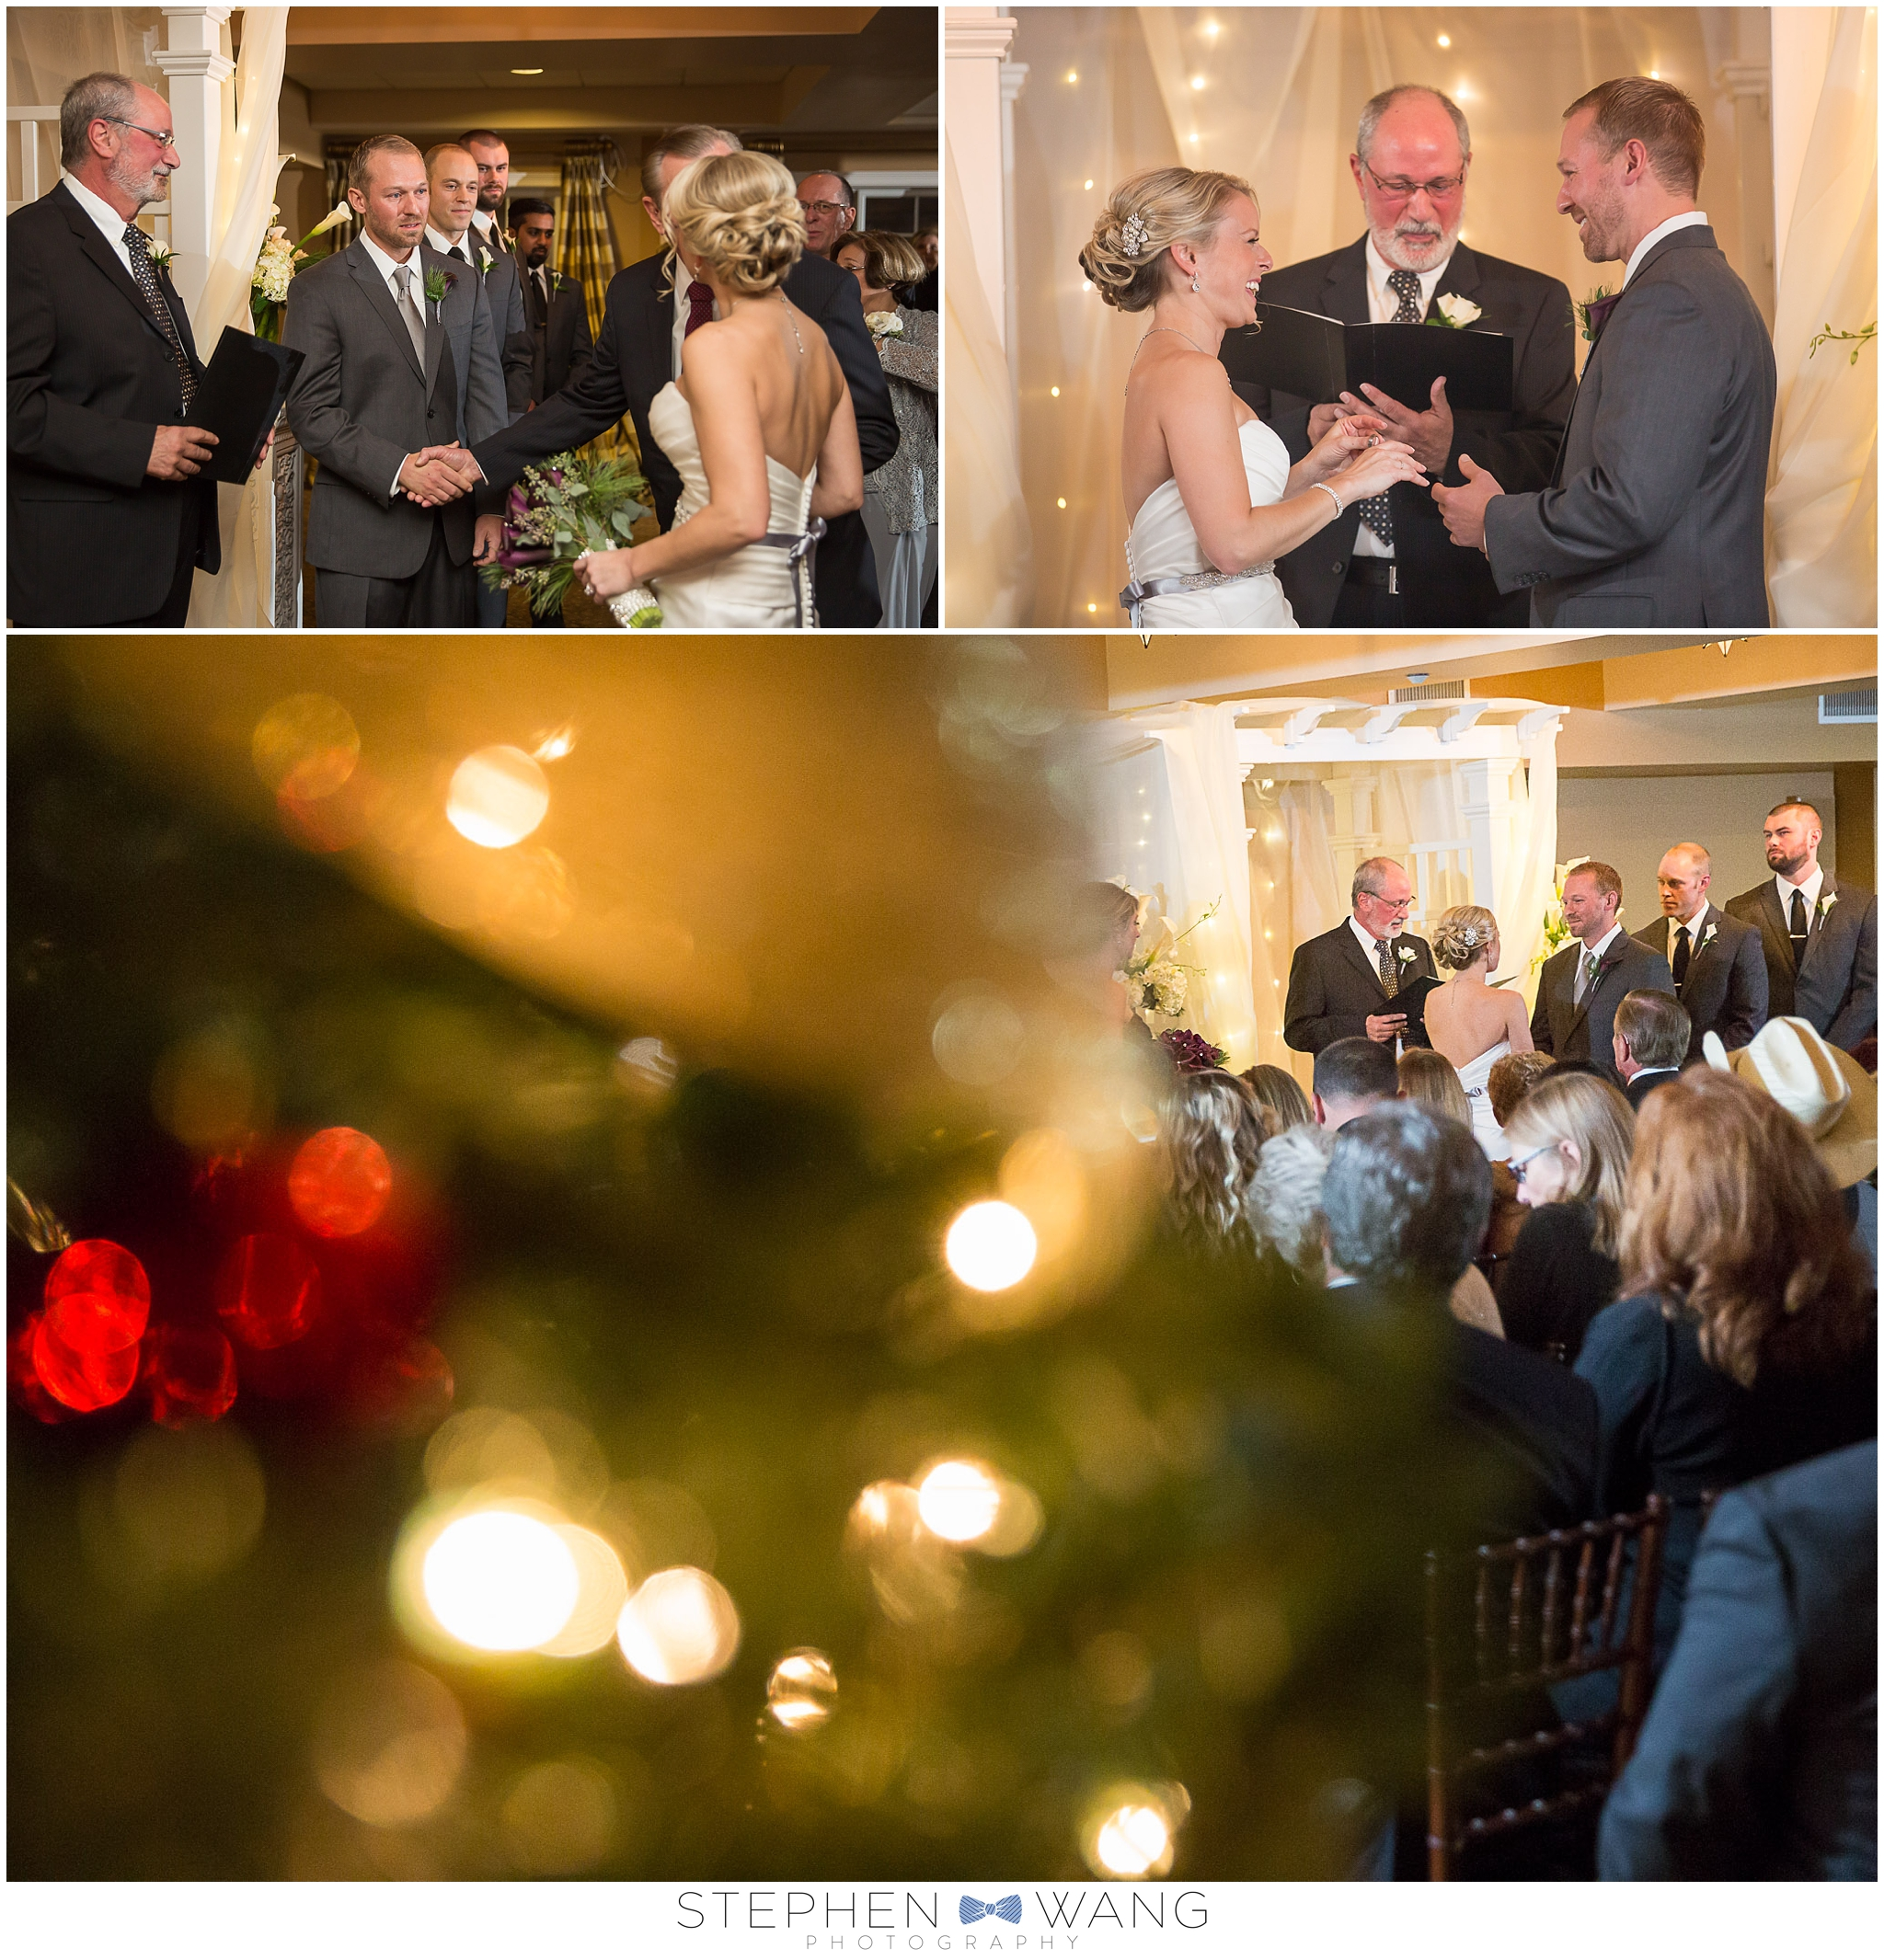 Stephen Wang Photography winter wedding connecticut east haddam riverhouse haddam ct middletown inn christmas wedding photography connecticut photographer-01-15_0027.jpg